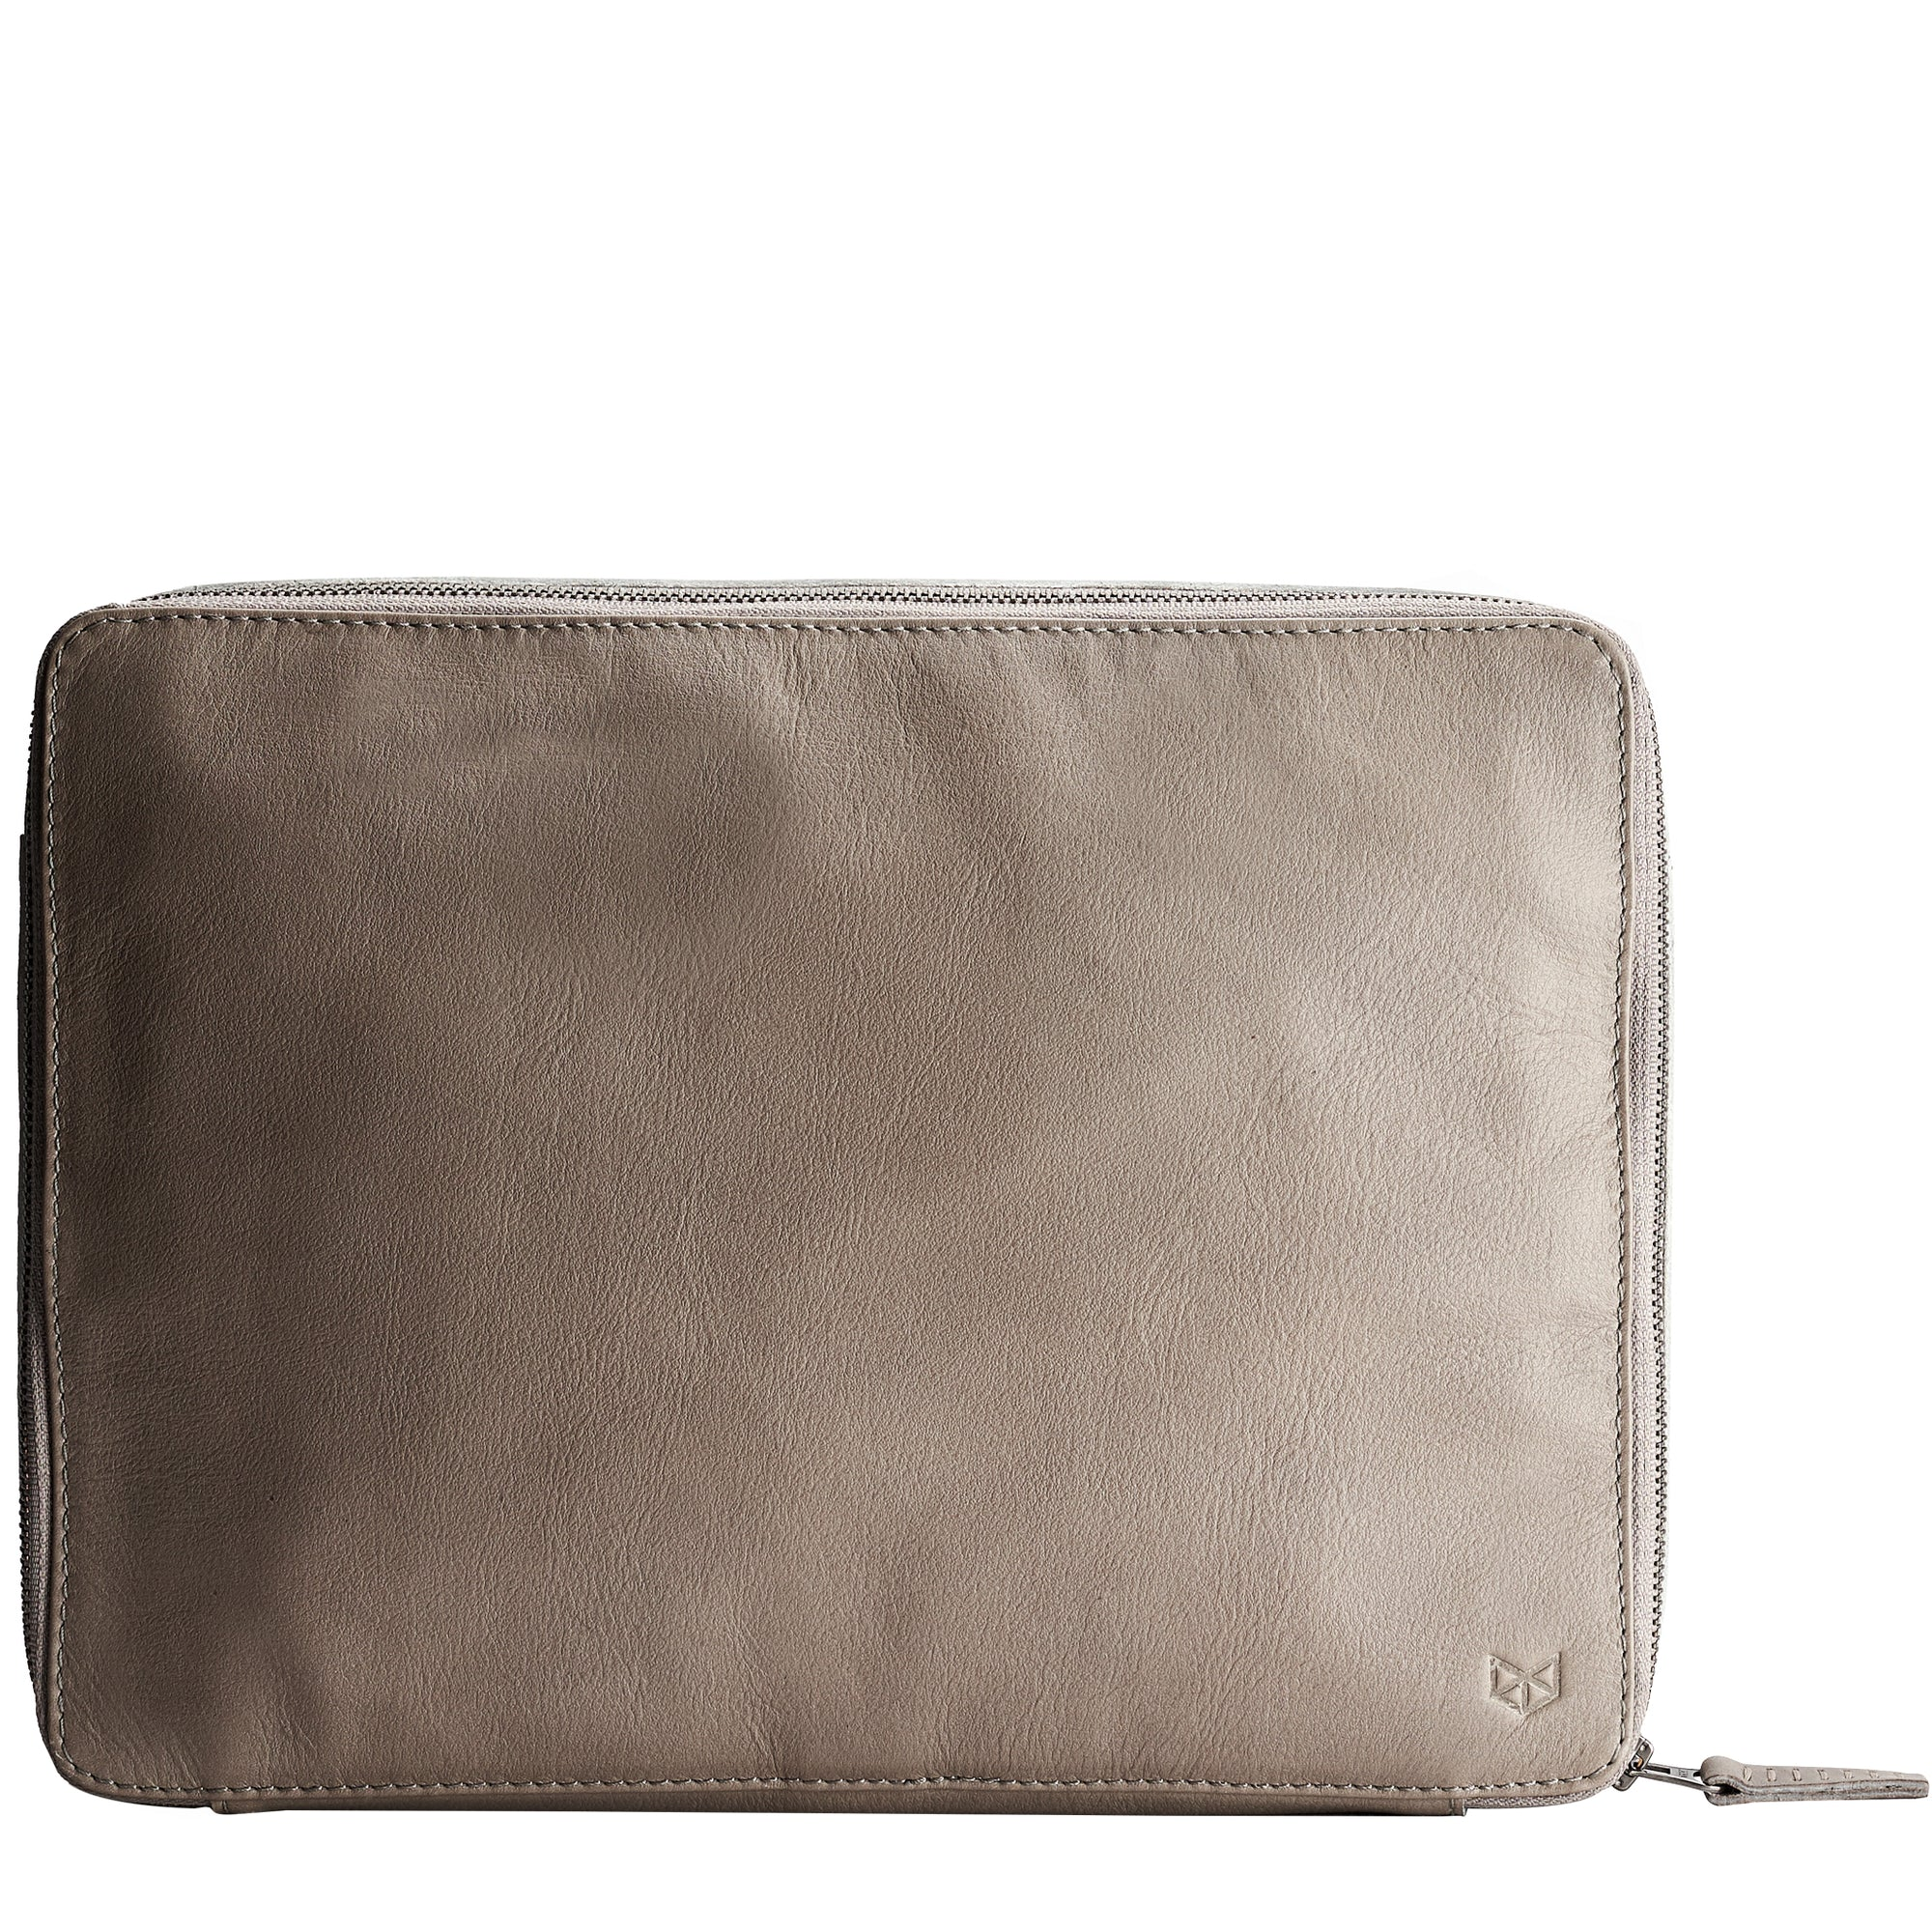 Grey leather gadget bag 15 inch, tech dopp kit, electronic organizer.